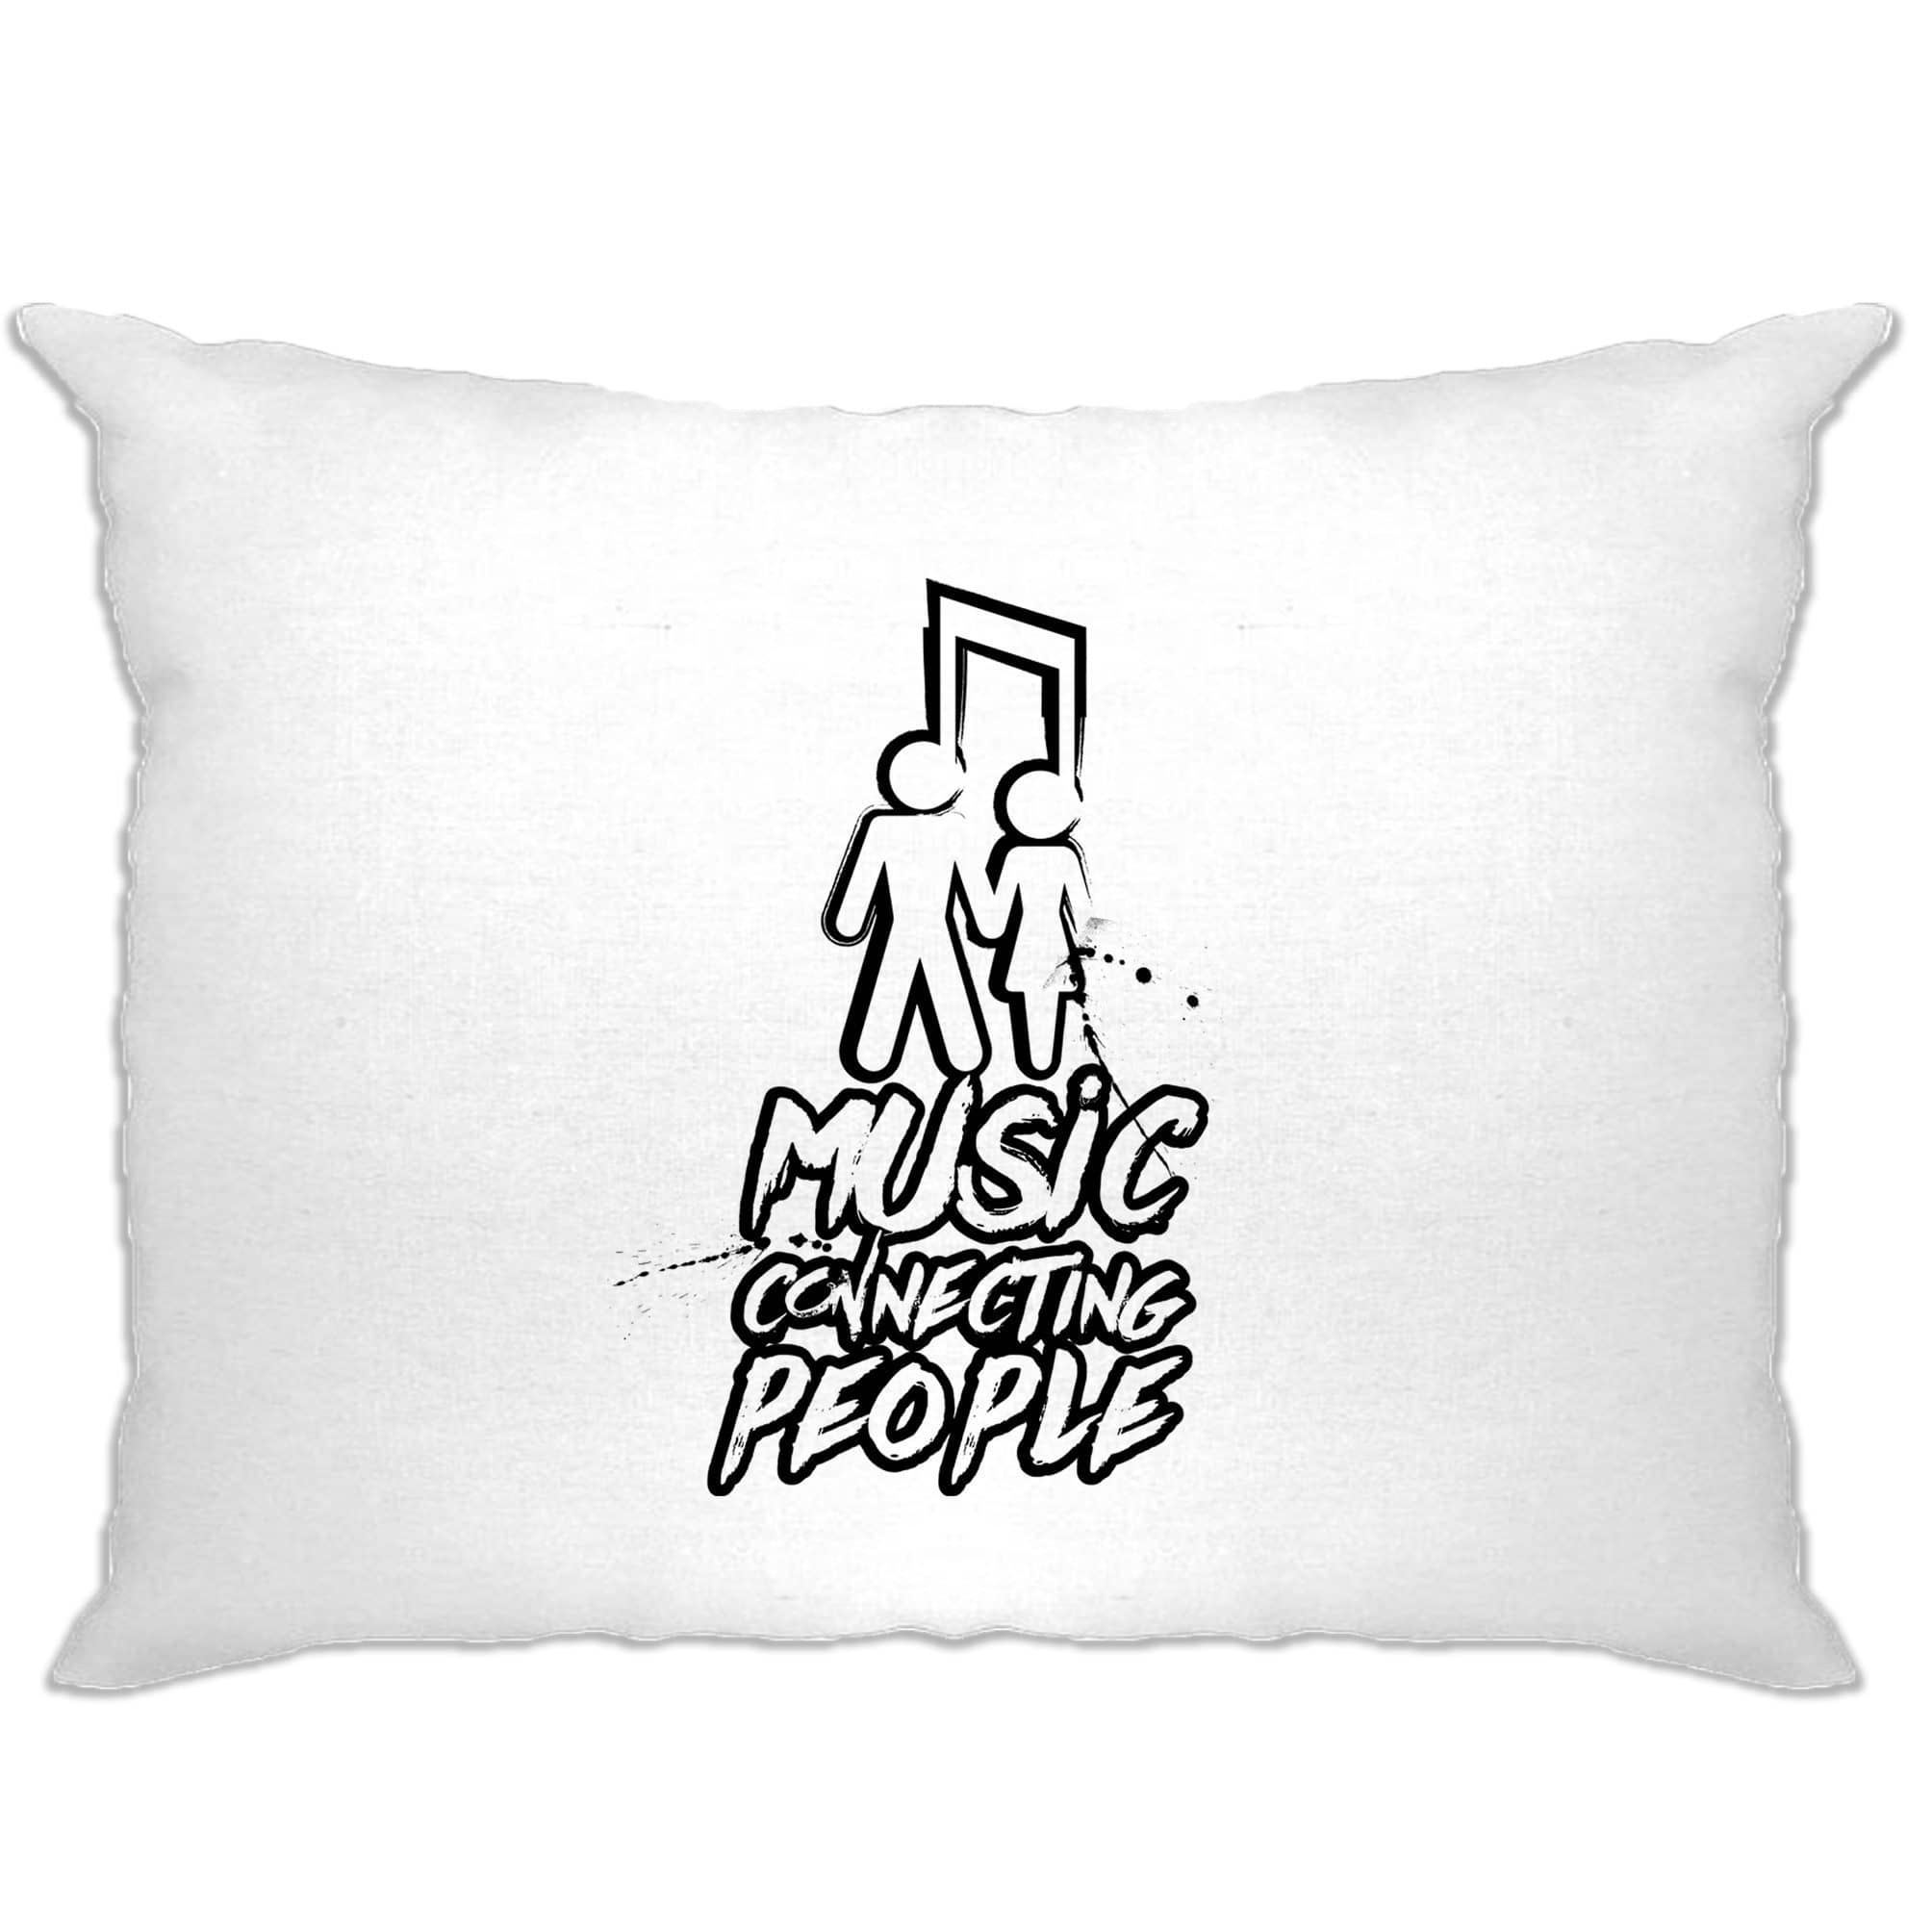 Cute Couples Pillow Case Music Connecting People Slogan